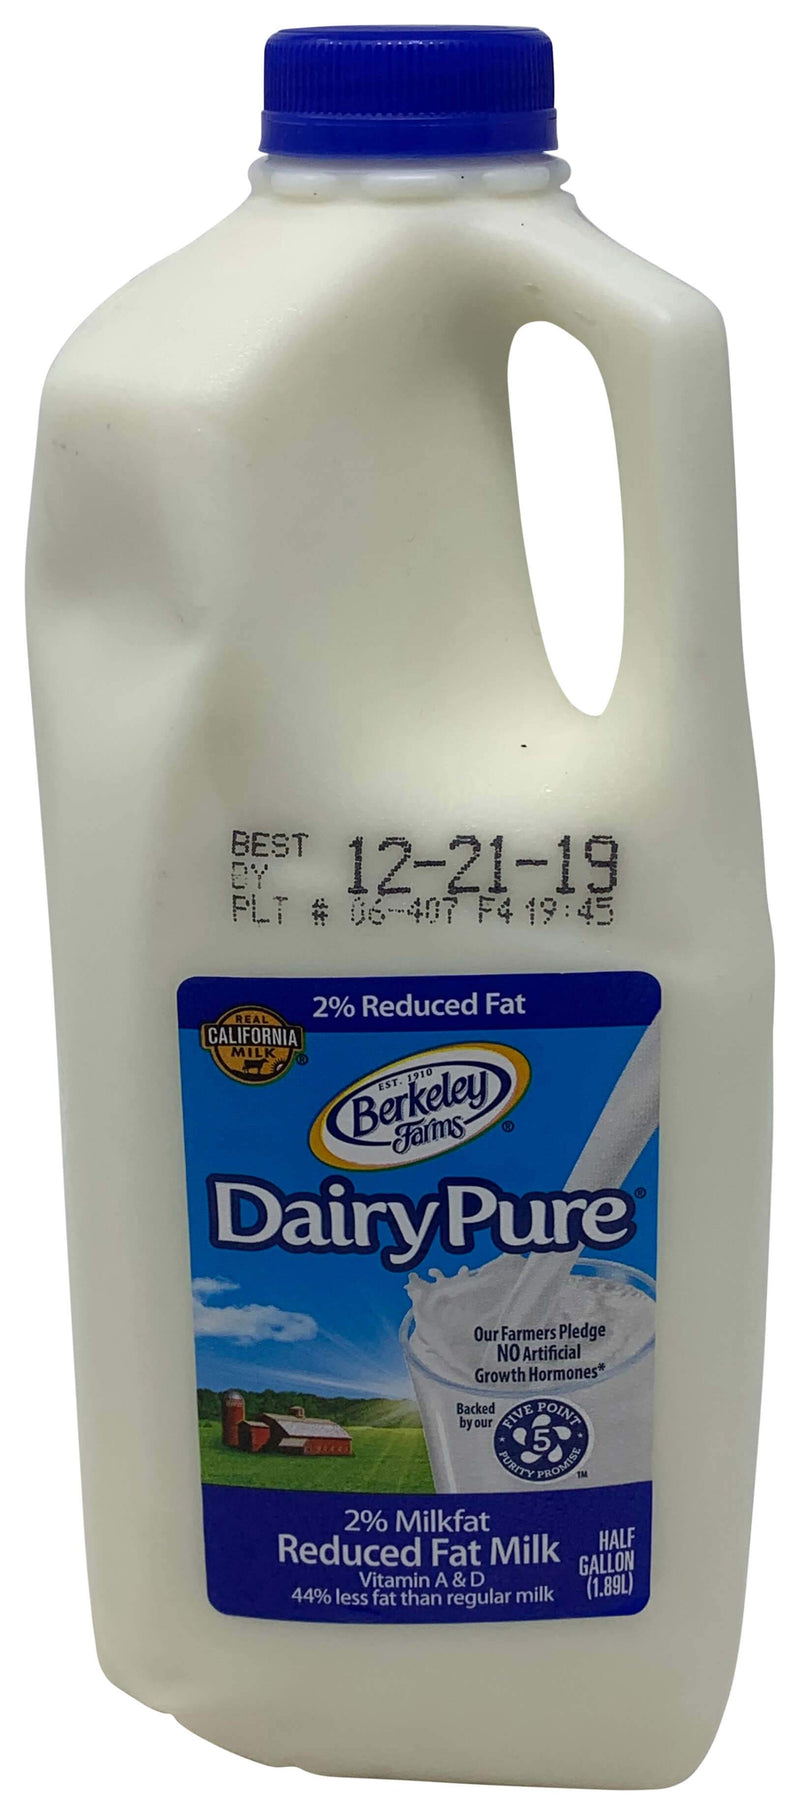 Berkley Dairy Pure Reduced Fat 2% Milk Half Gallon